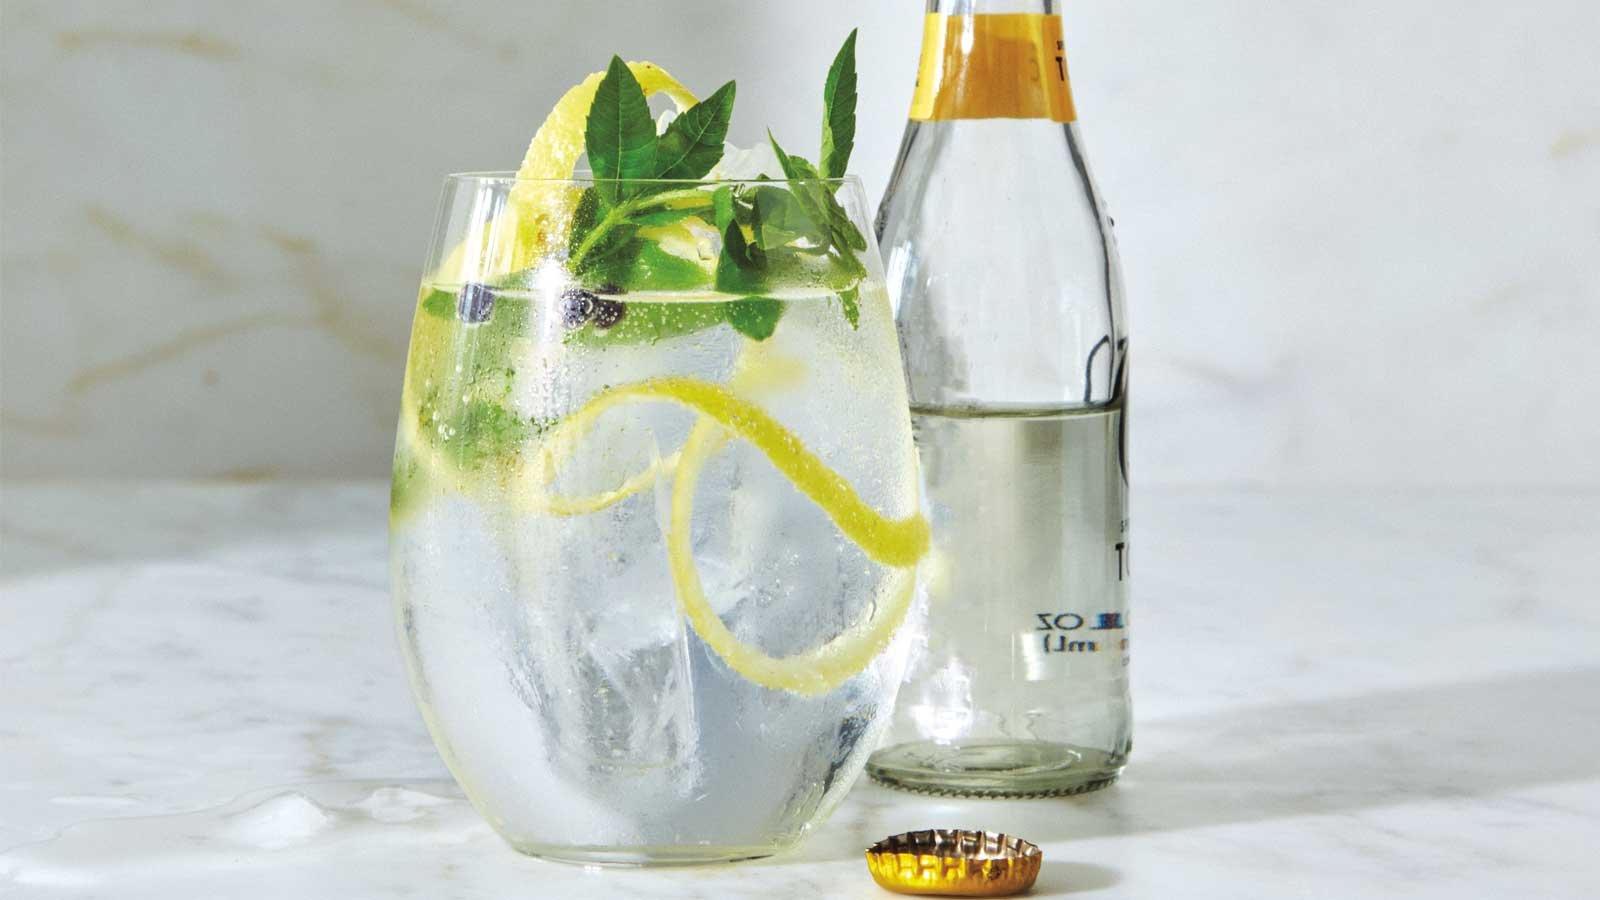 Gin And Tonic - Magazine cover